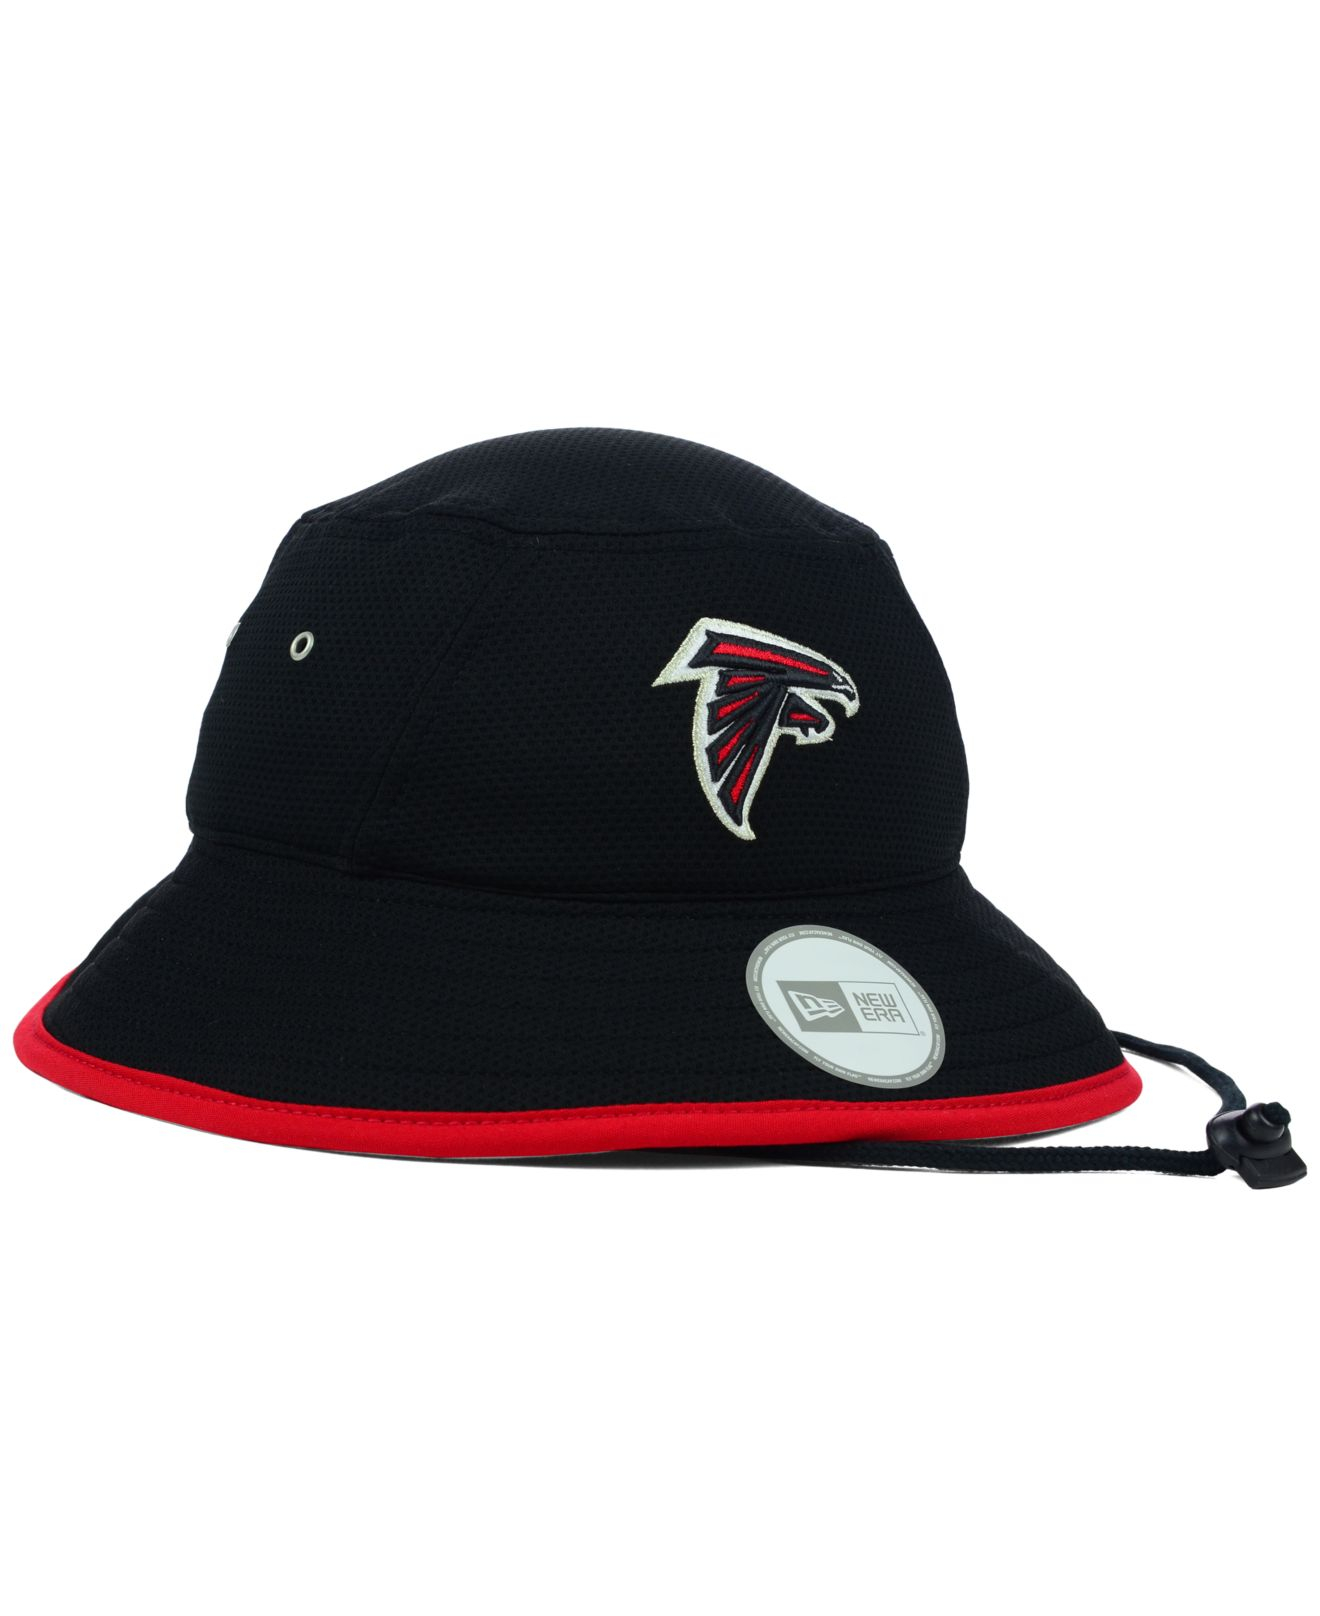 Lyst - KTZ Atlanta Falcons Training Bucket Hat in Black for Men 3bd447128